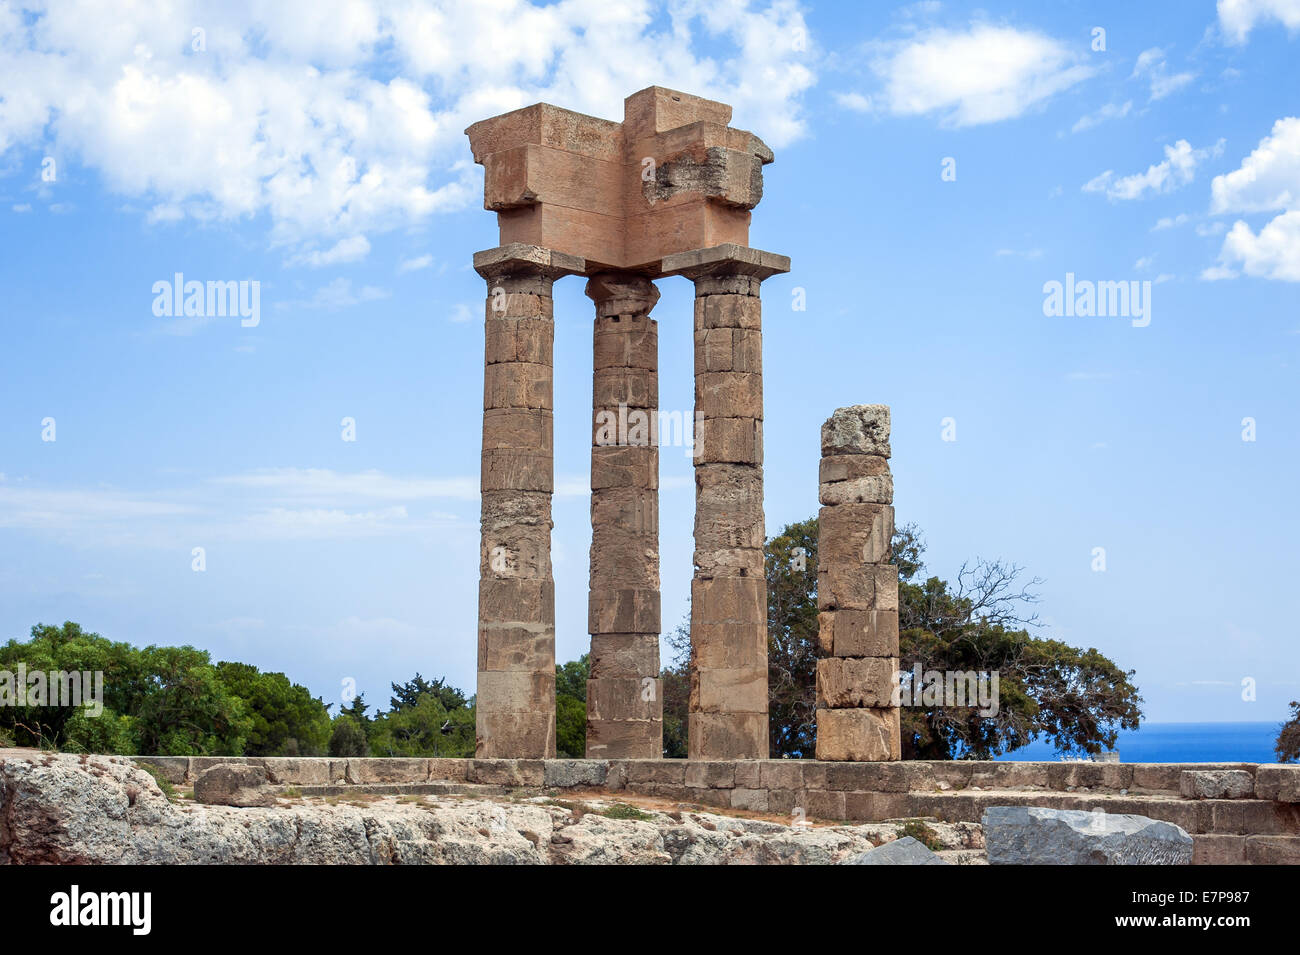 acropolis rhodes, Ruins of ancient temple - Stock Image